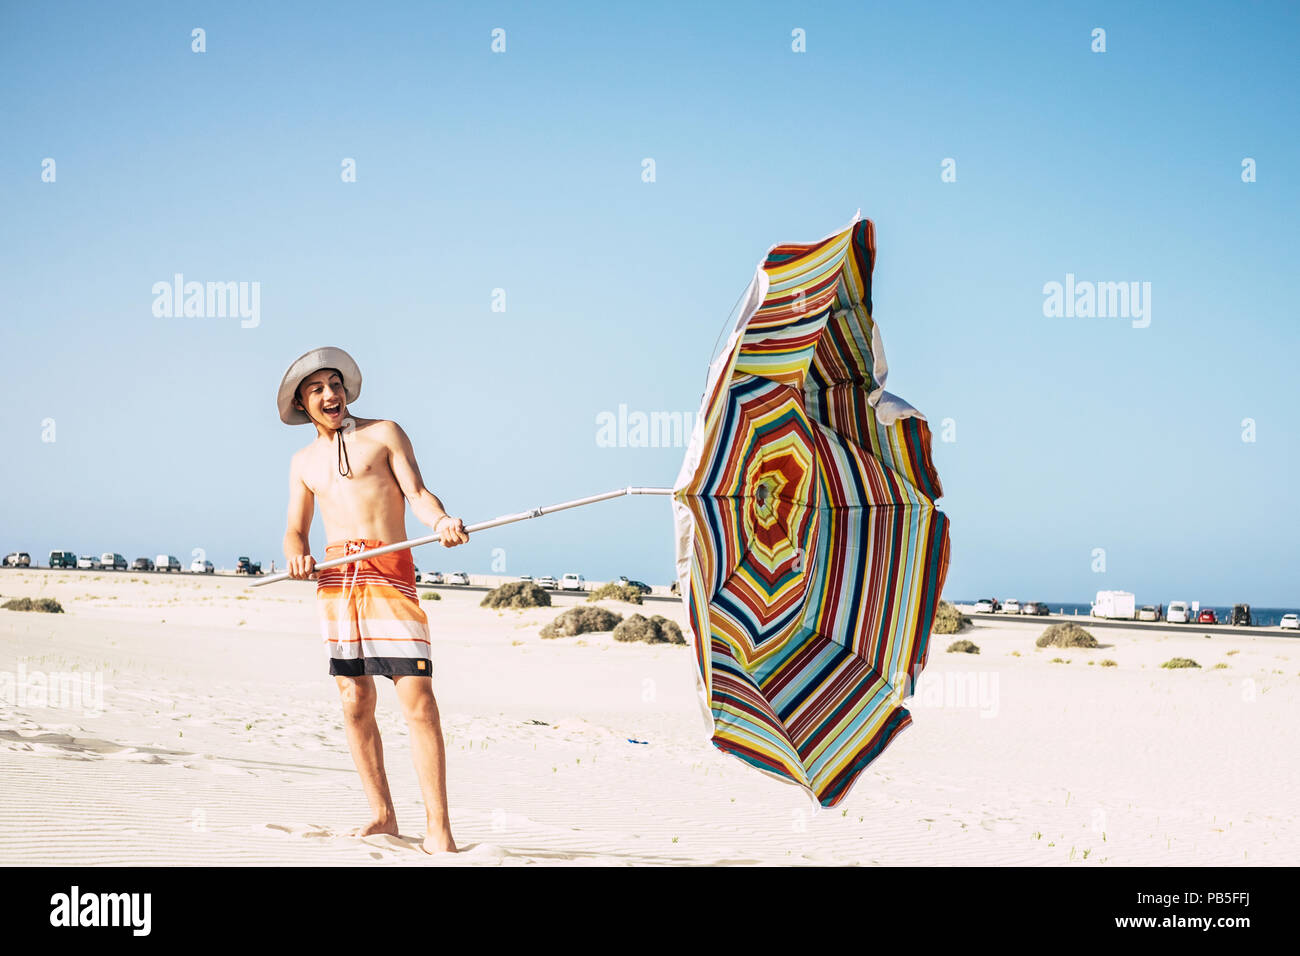 young male caucasian teenager play with umbrella sun and wind in a sandy paradise beach. smile and have fun enjoying the holiday and the warm weather  - Stock Image